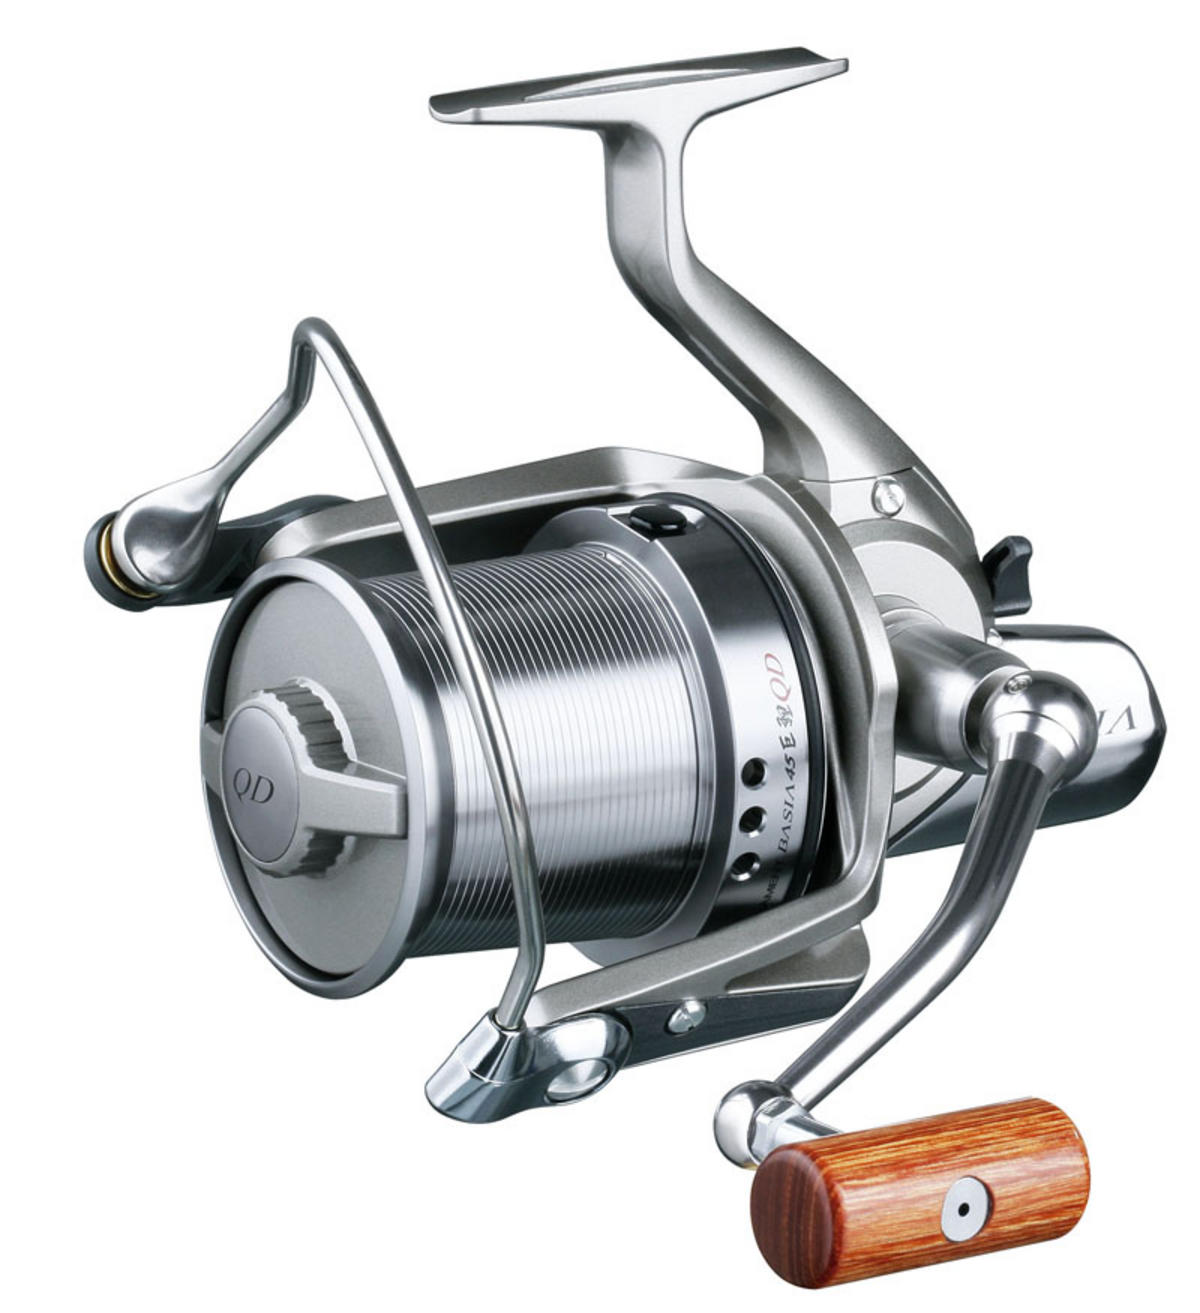 Daiwa tournament basia 45 qda model no bas45qda carp for Daiwa fishing reels